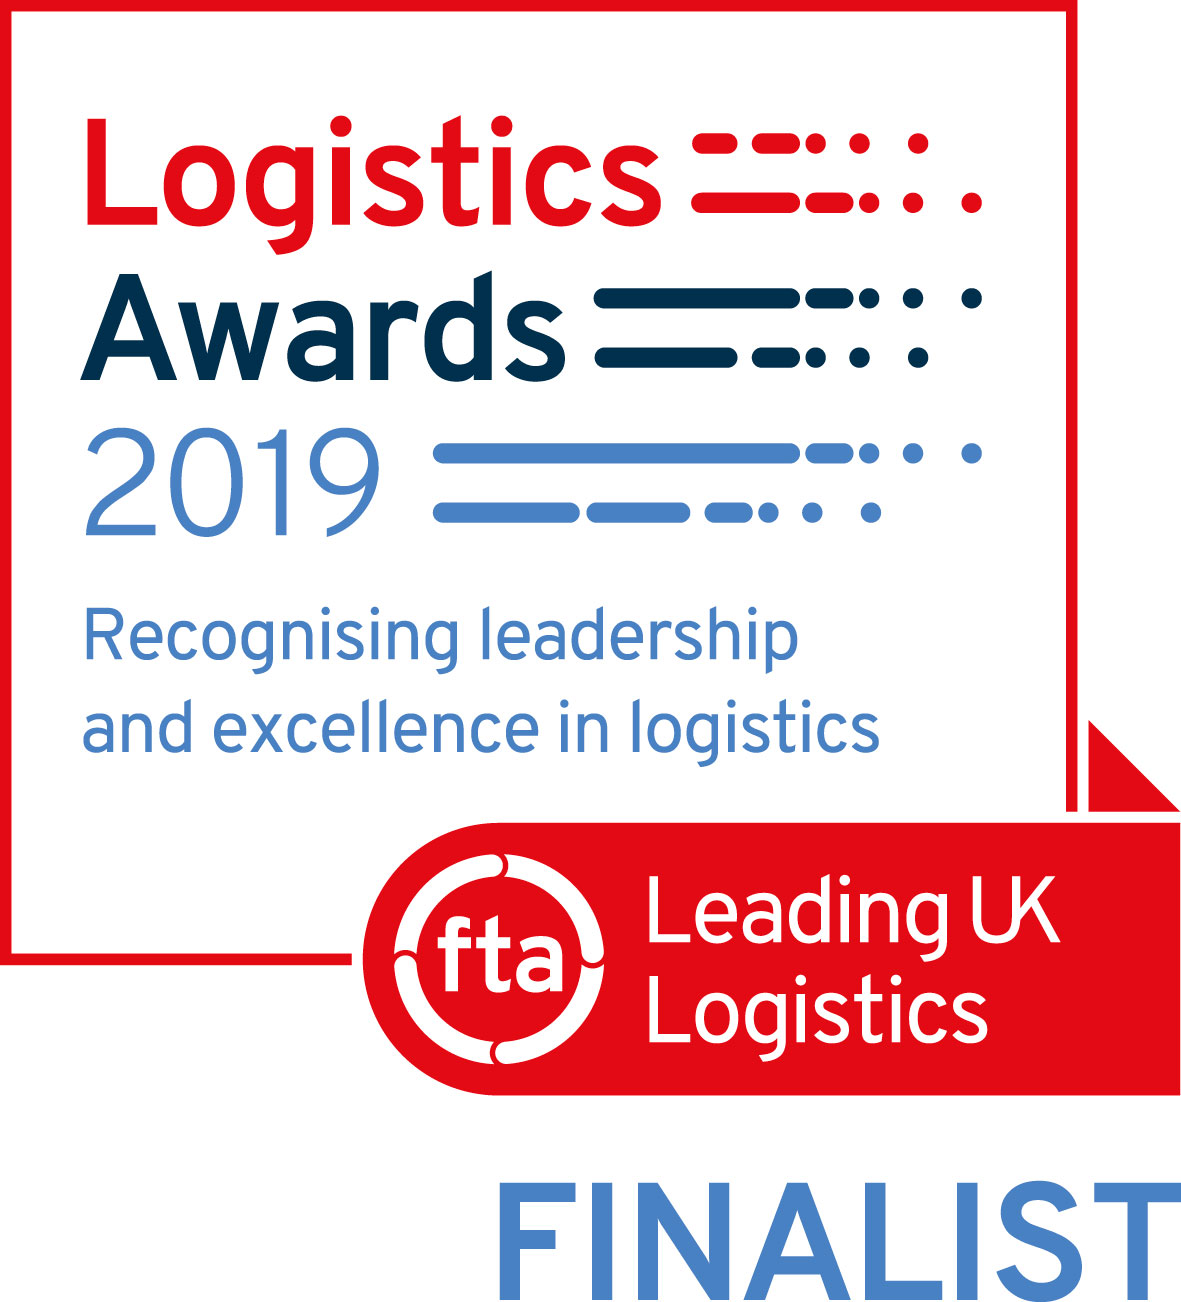 FTA Awards finalists 2019